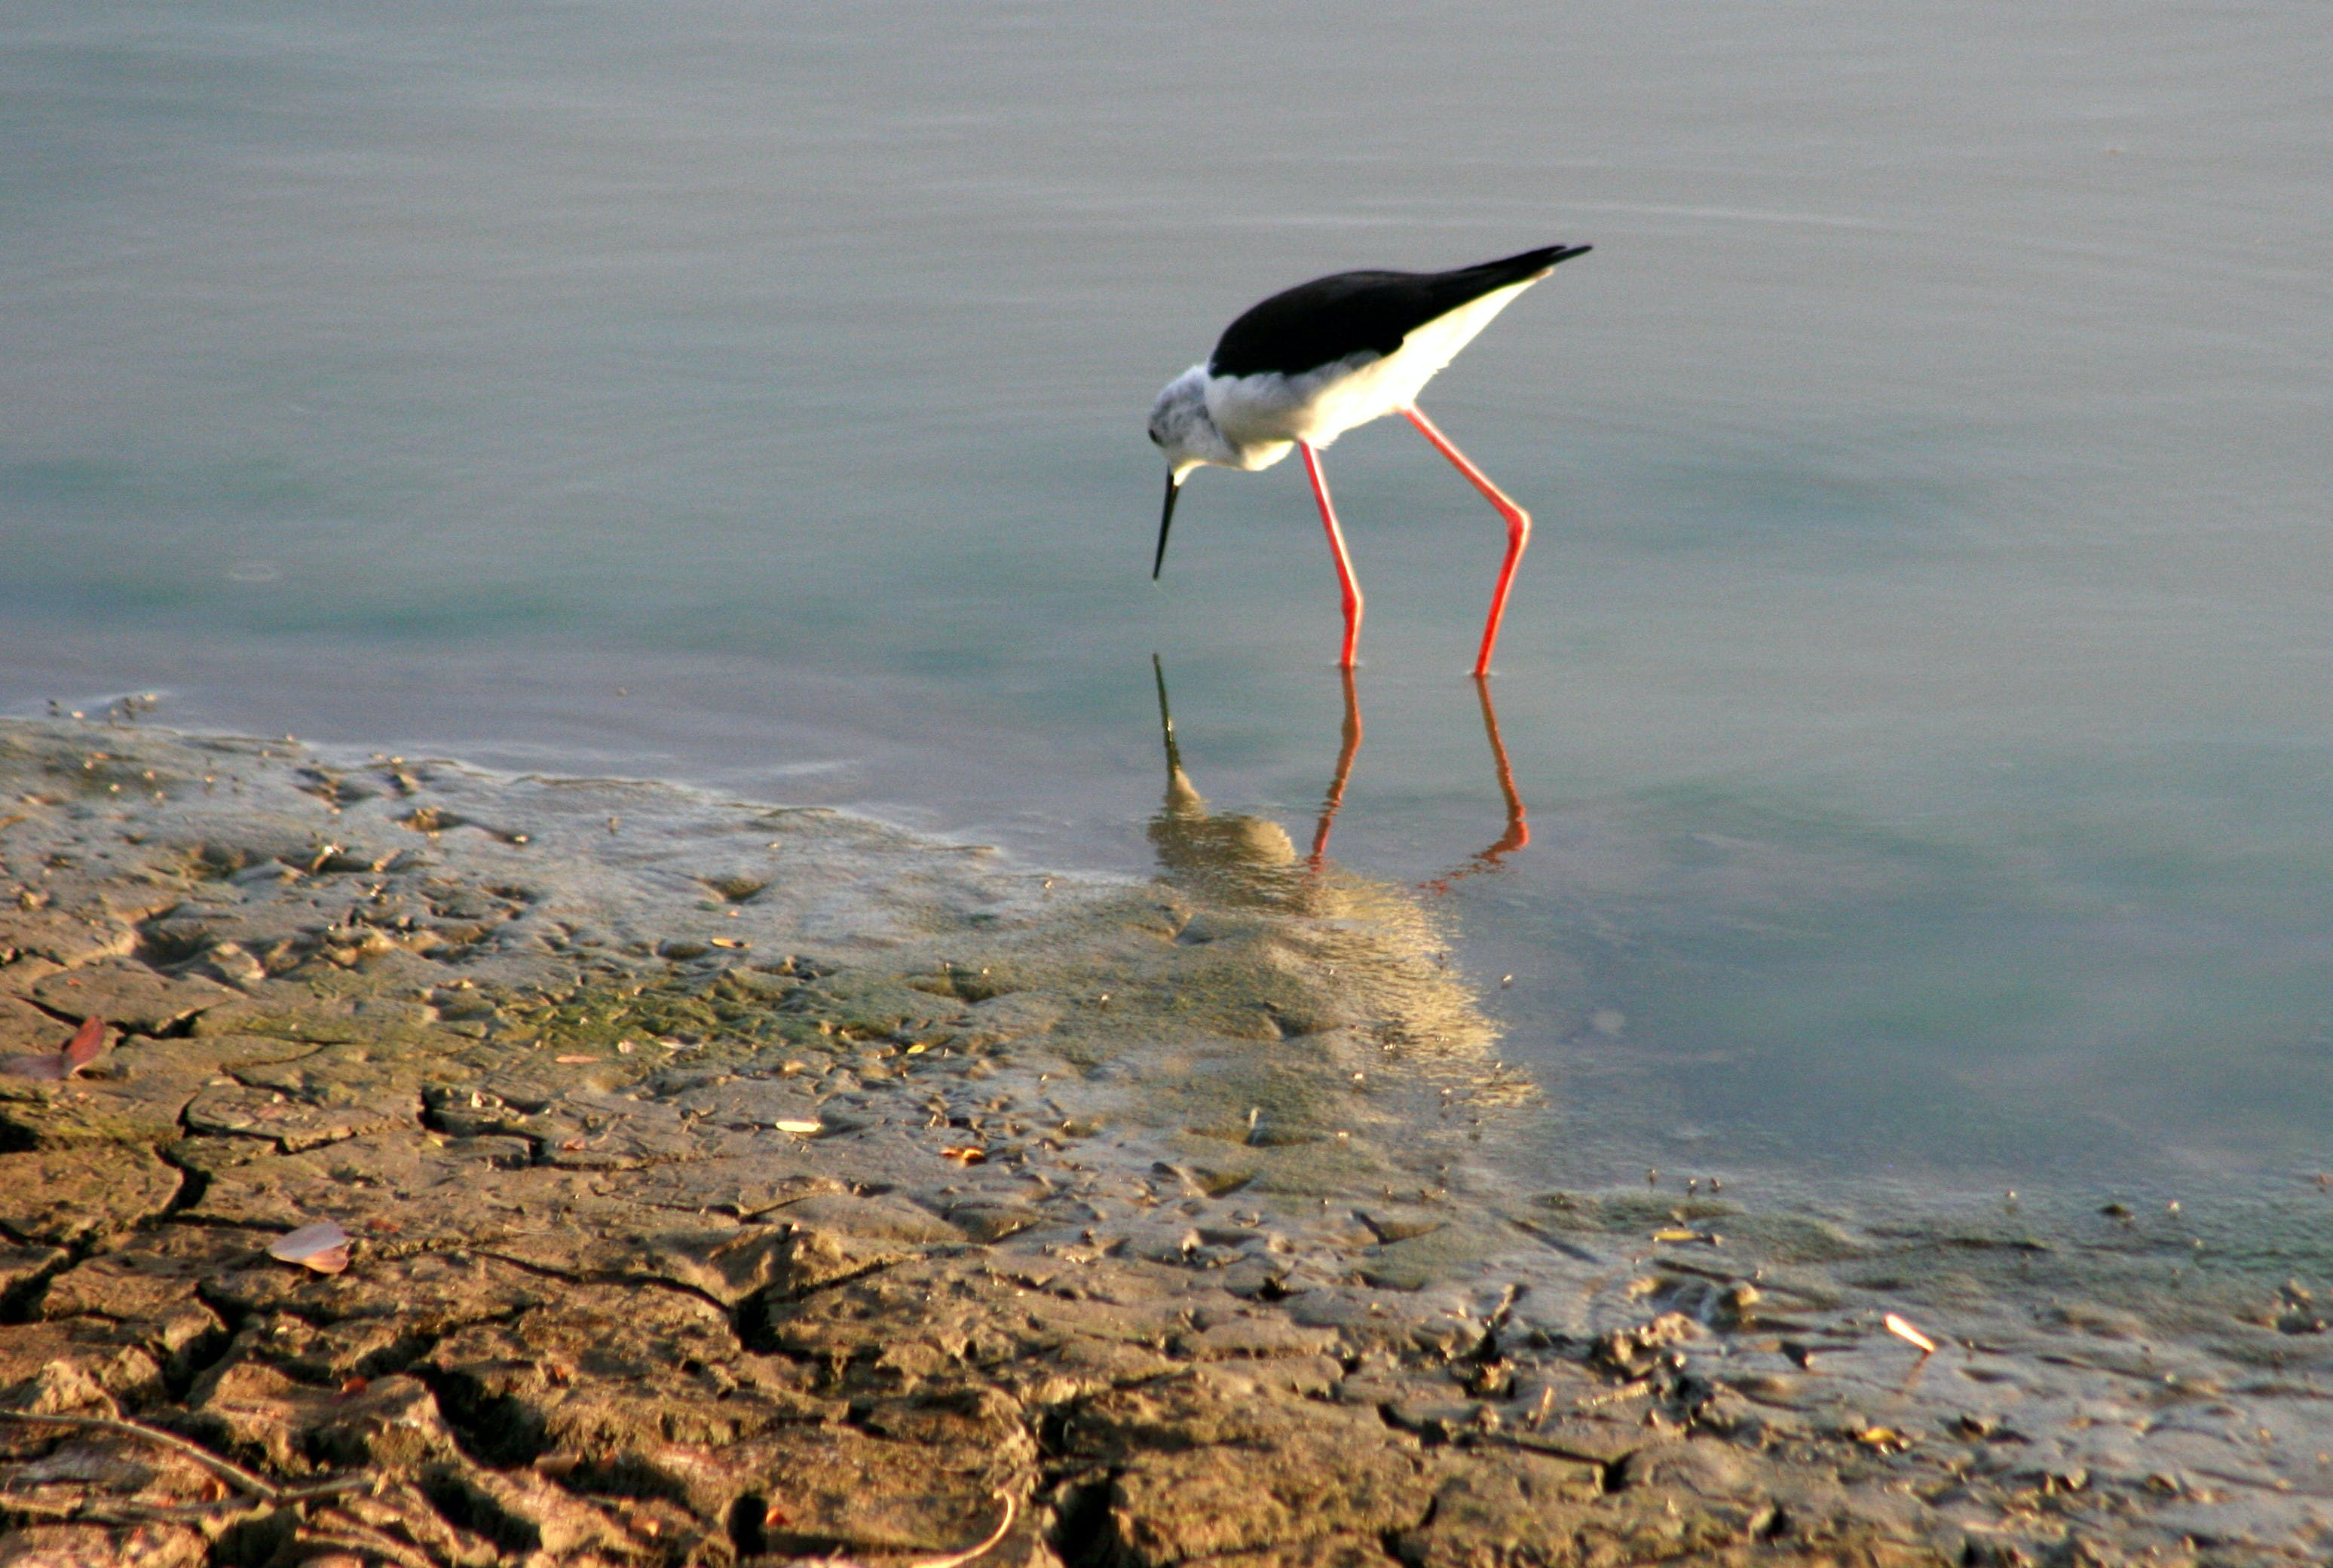 White and Black Long-beaked and Long Legged Bird on Body of Water Photography